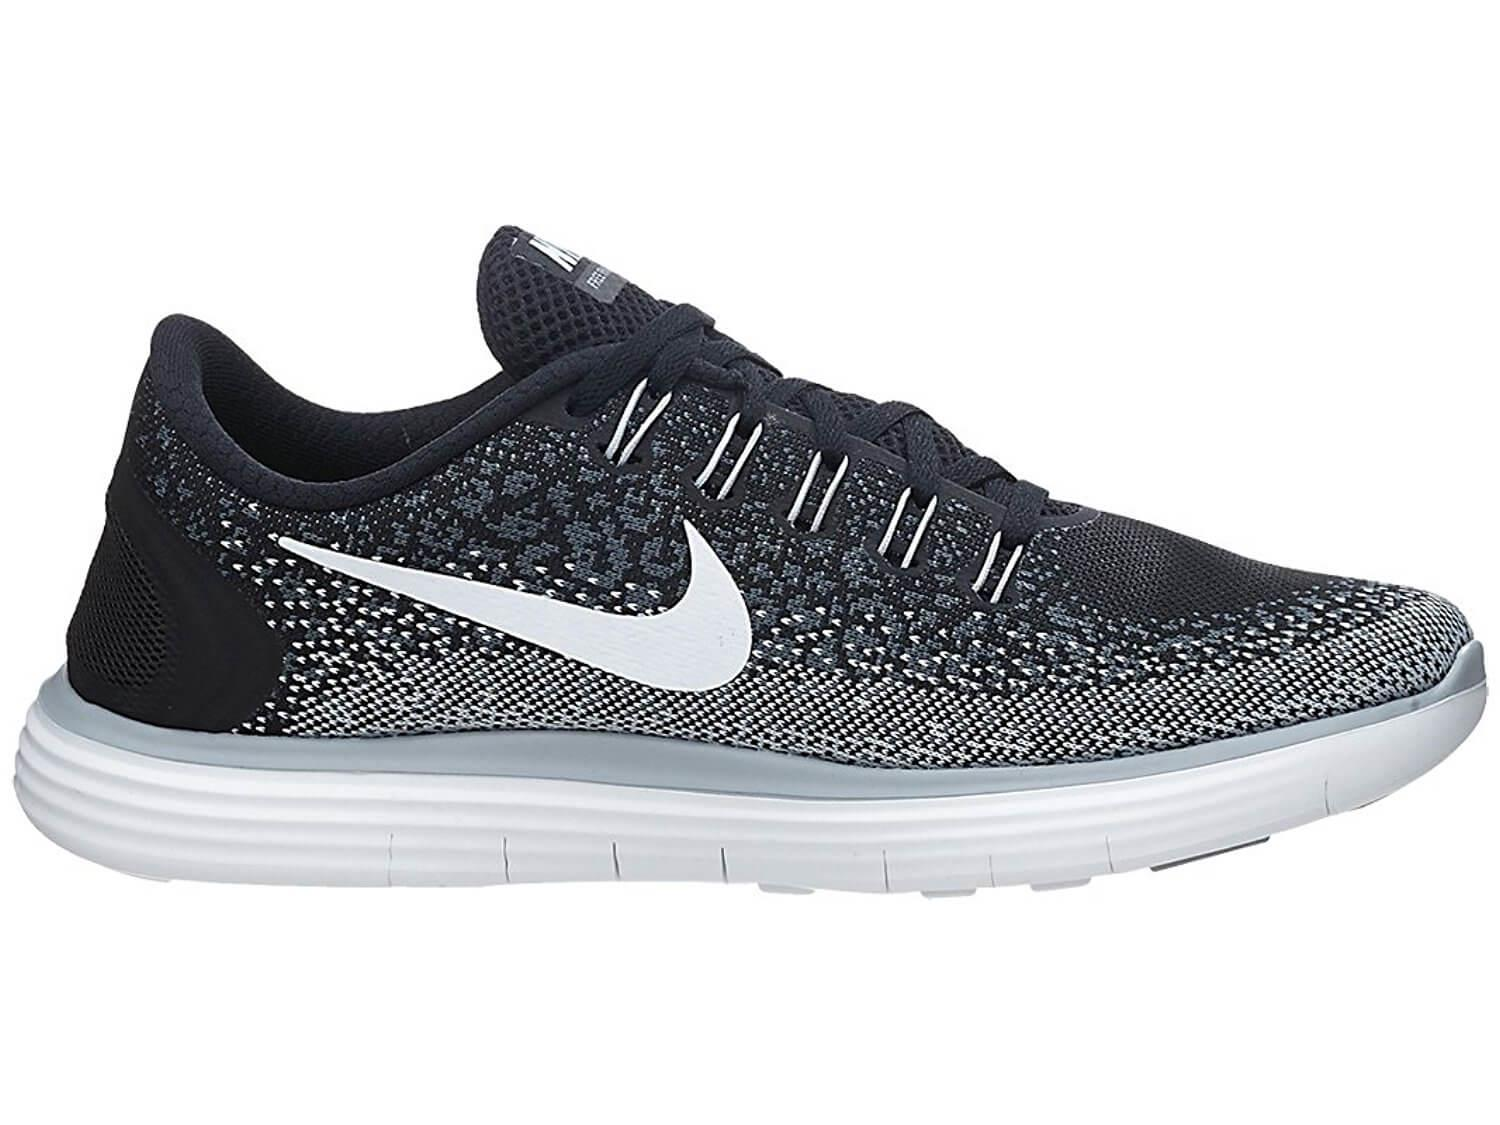 pretty nice 6a8f2 c6d97 ... Responsiveness and cushioning go hand-in-hand with the Nike Free RN  Distance s midsole ...